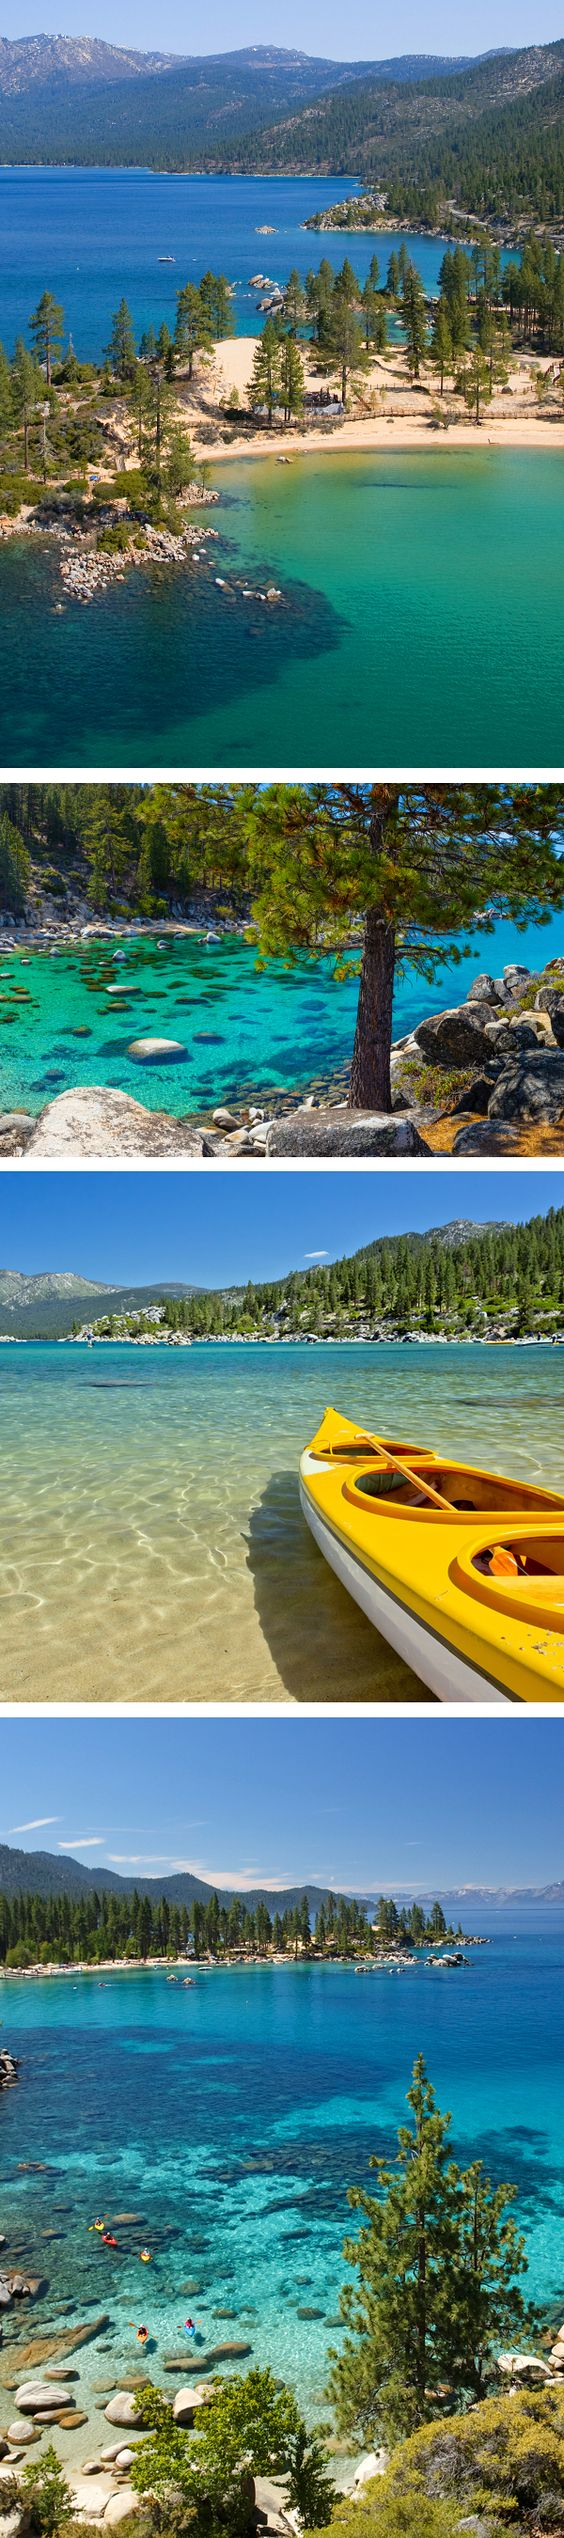 Lake Tahoe's Best Beaches - your summer guide to the best beaches at Lake Tahoe. Photos, video and descriptions of gorgeous beaches of Tahoe. Sand Harbor, Baldwin Beach, Secret Cove, Hidden Beach and more.